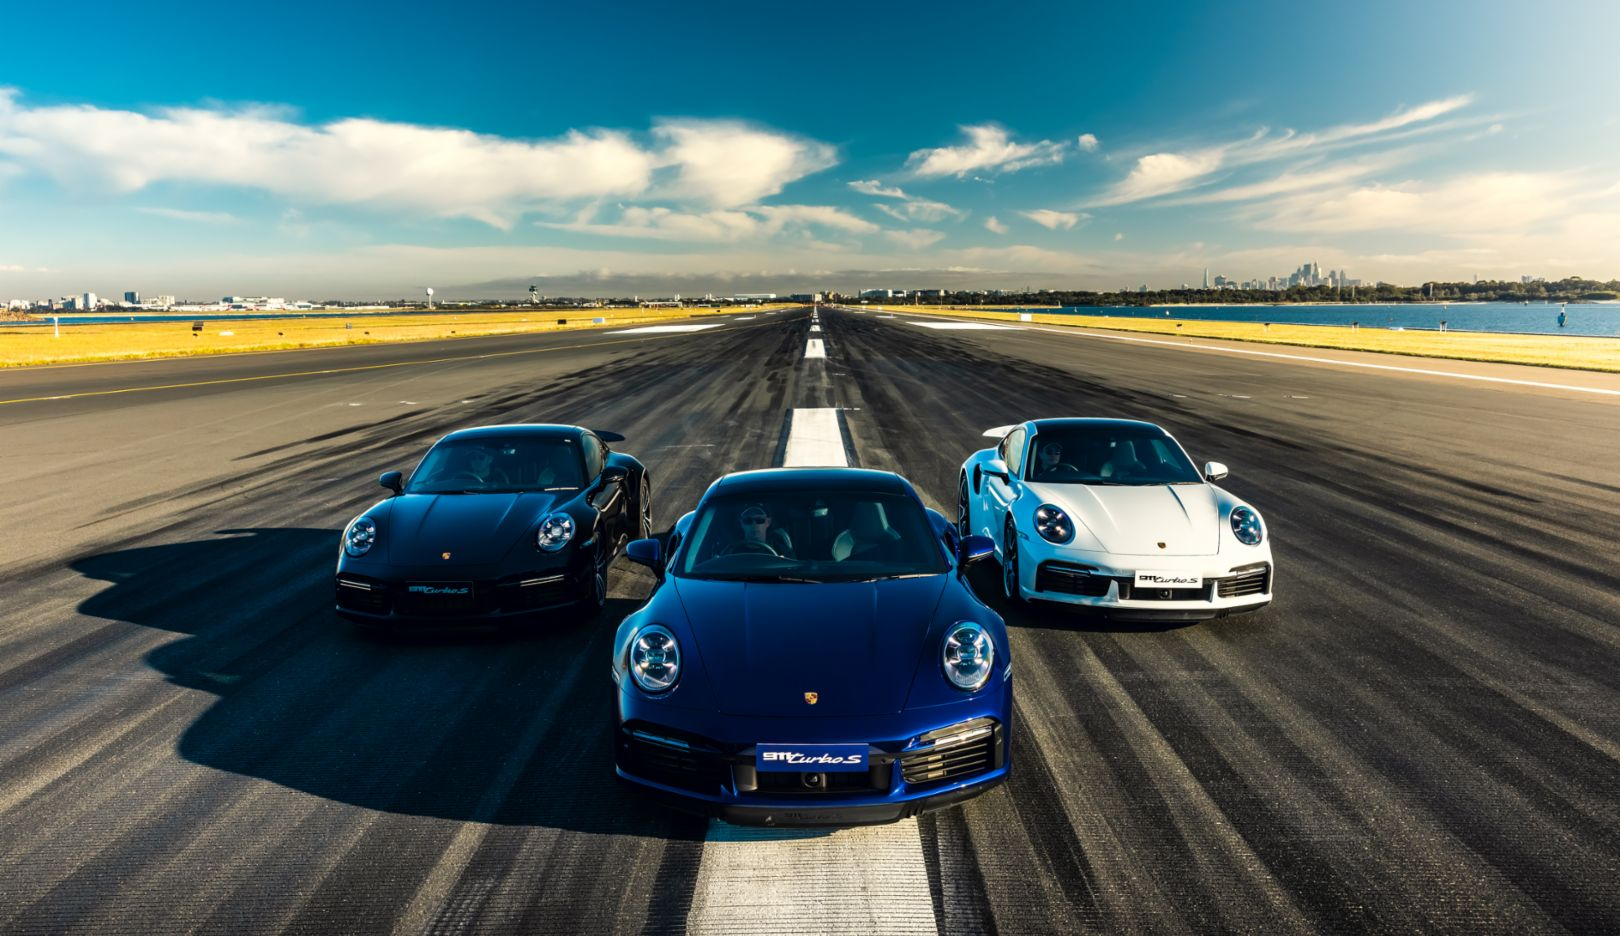 Porsche 911 Turbo S, Launch Control event, Sydney Airport, 2020, Porsche Cars Australia